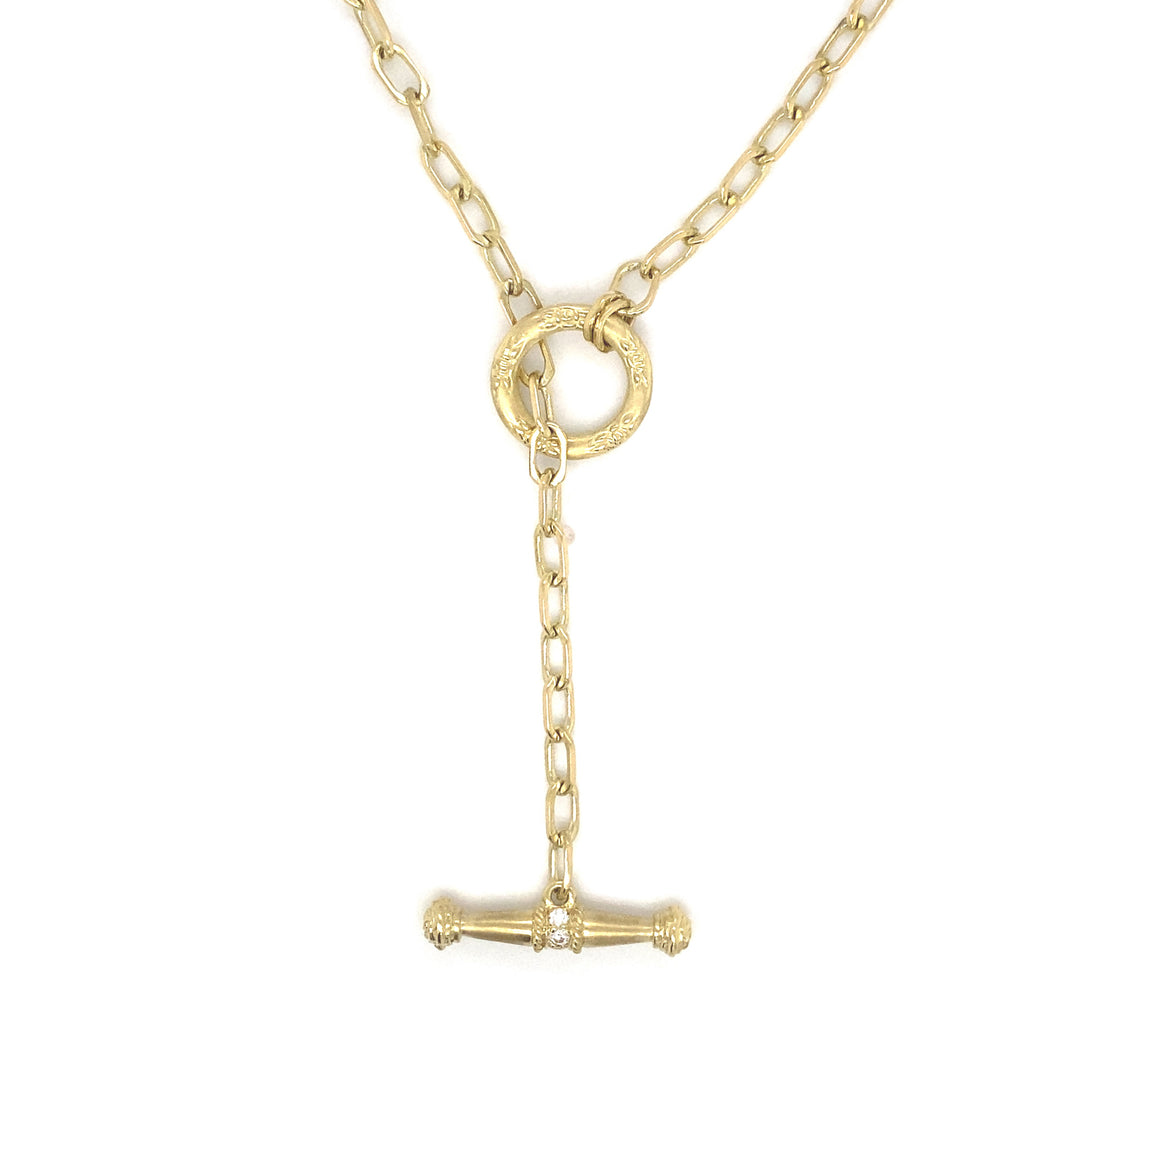 Flat Link Necklace with Diamond Toggle